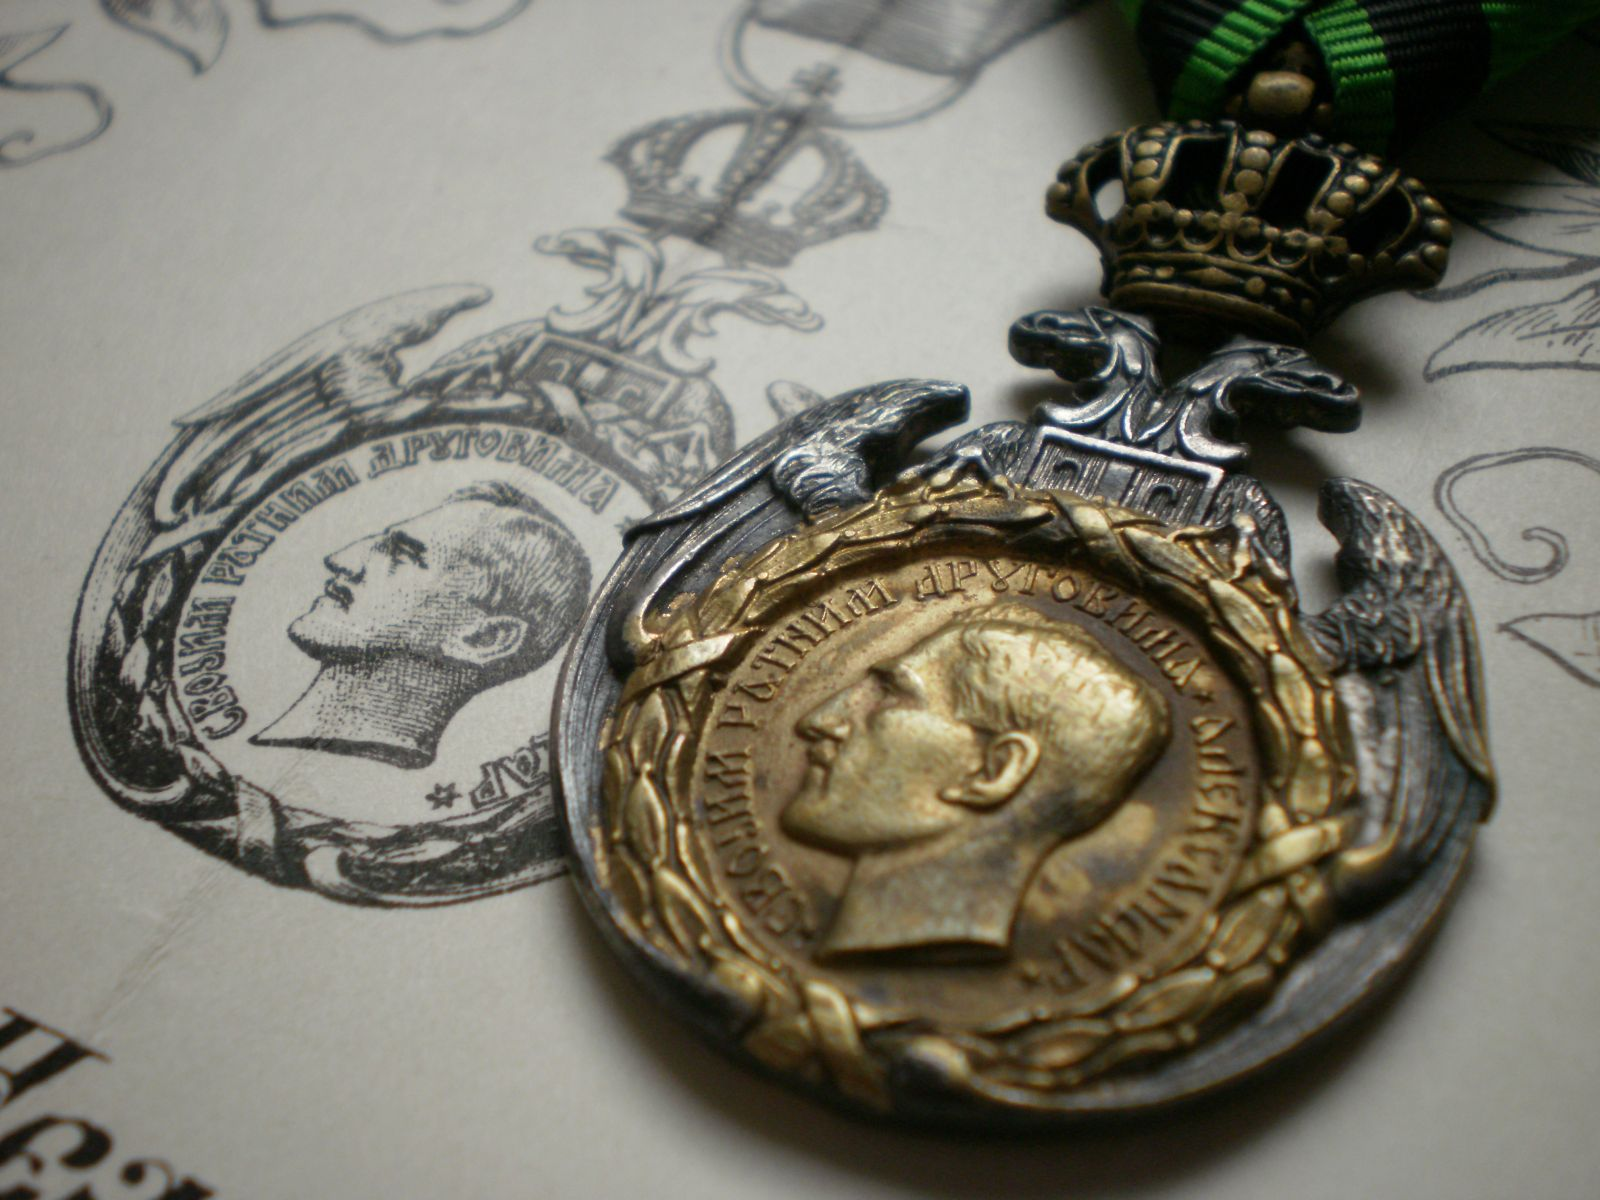 Albanian Retreat Medal